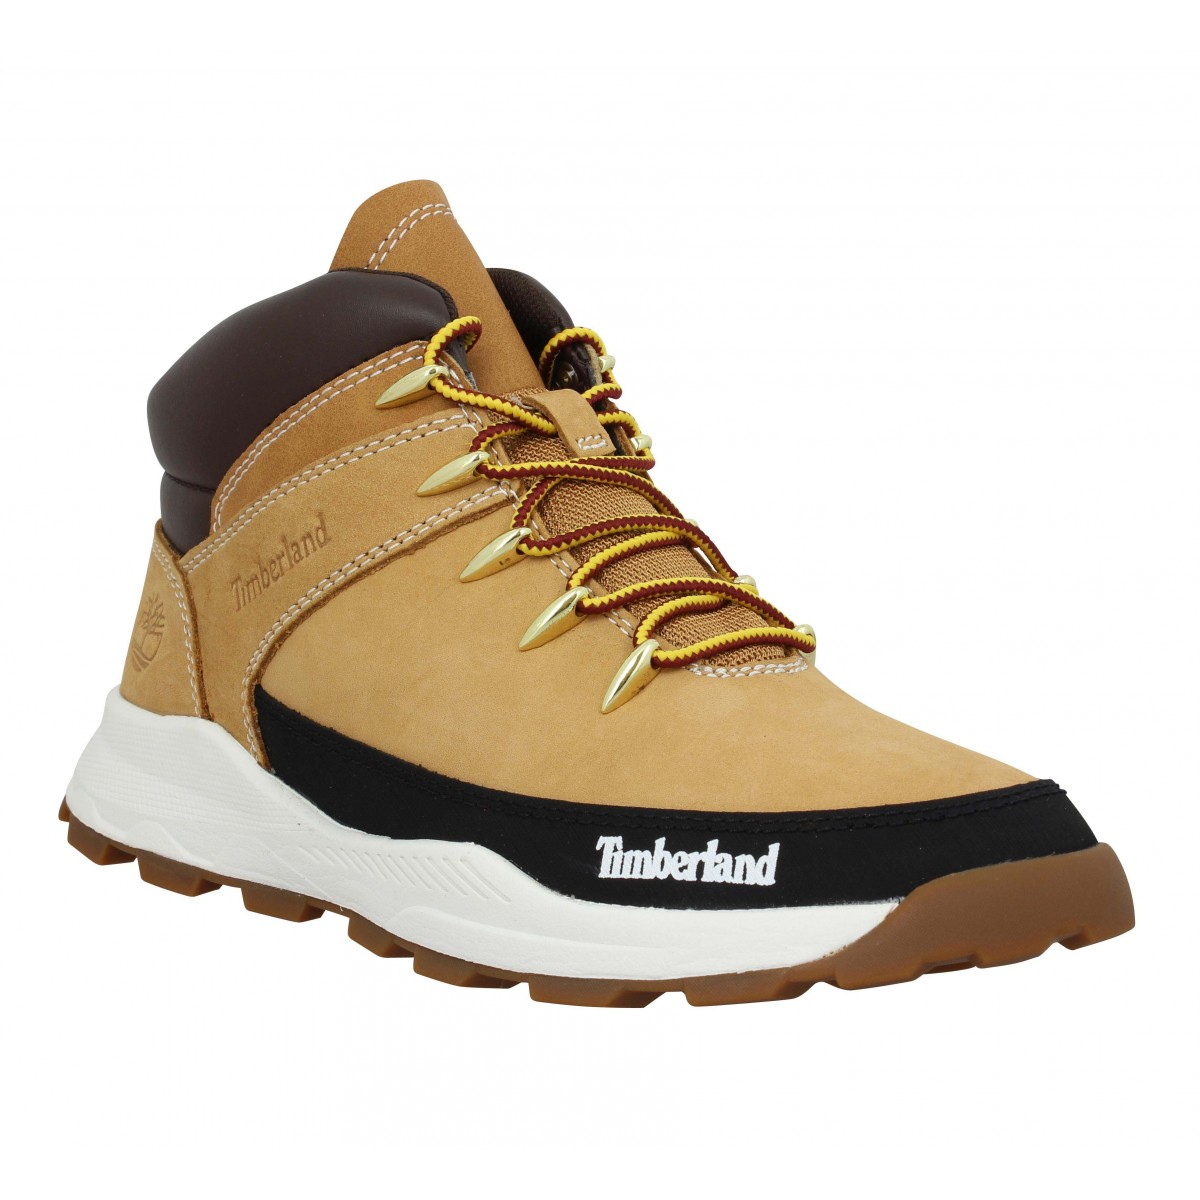 Baskets TIMBERLAND Brooklyn Sneaker Boot junior nubuck Enfant Ocre